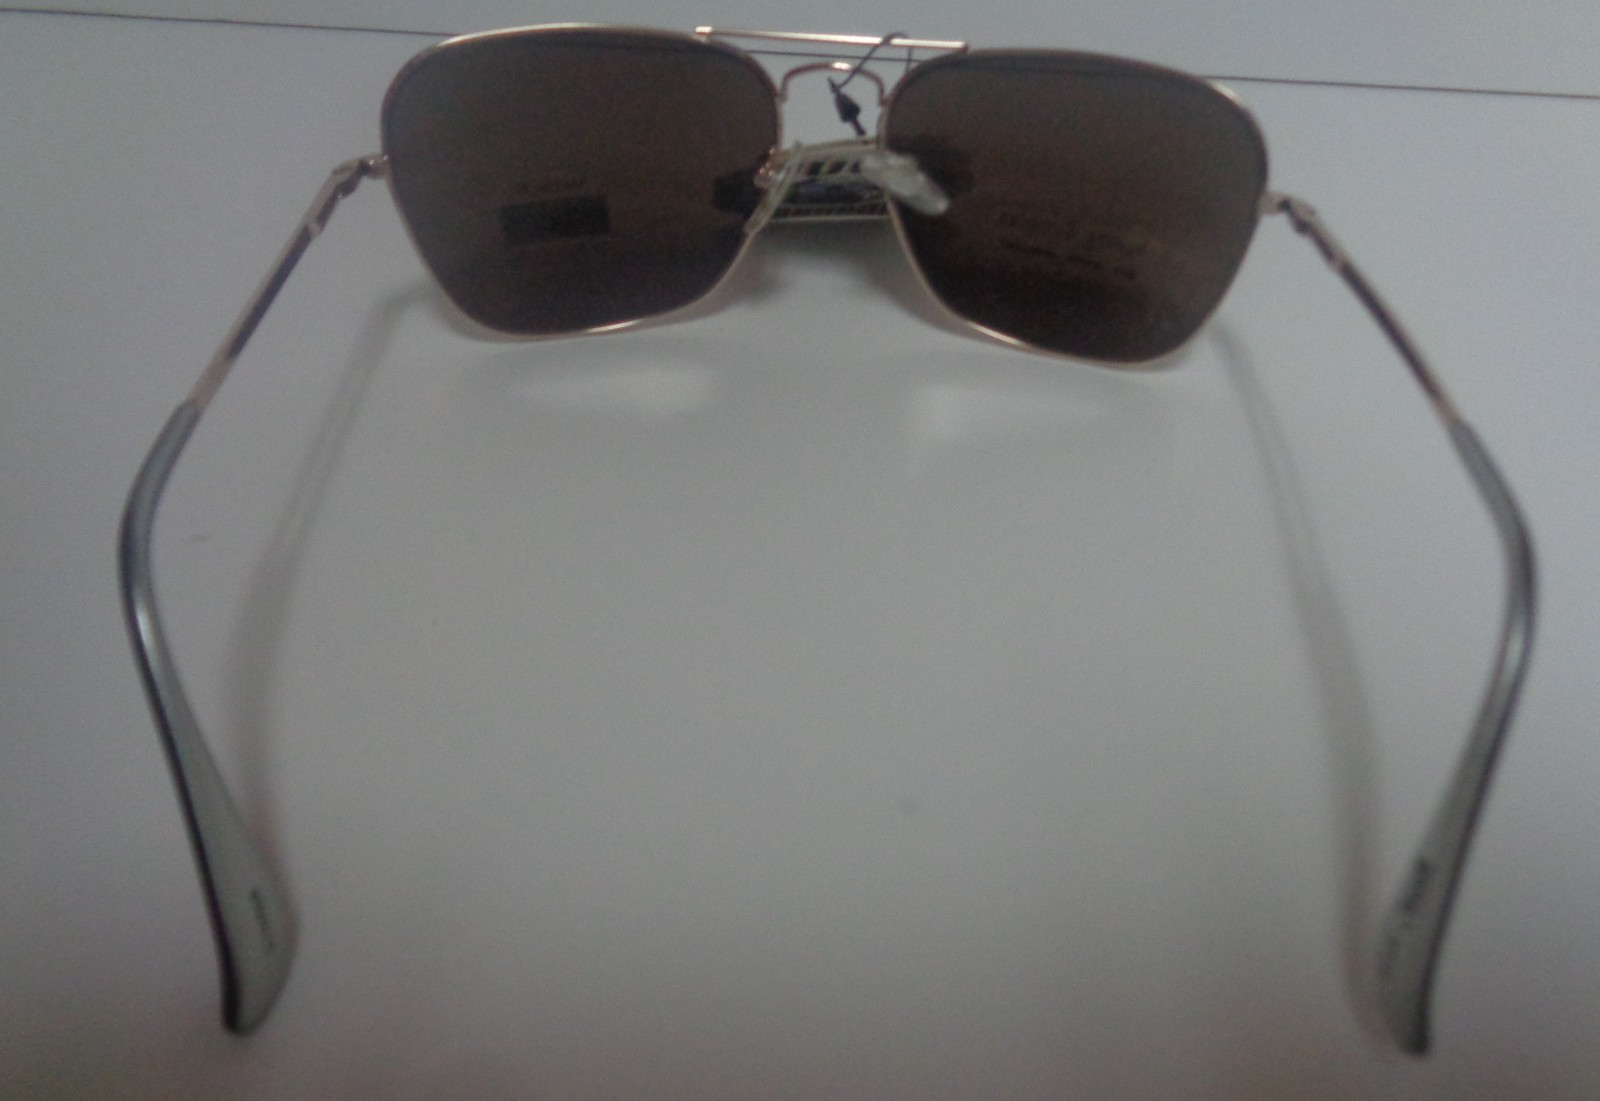 PUGSGEAR Gold Metal Spring Temples Sunglasses NWT UV400 Protection